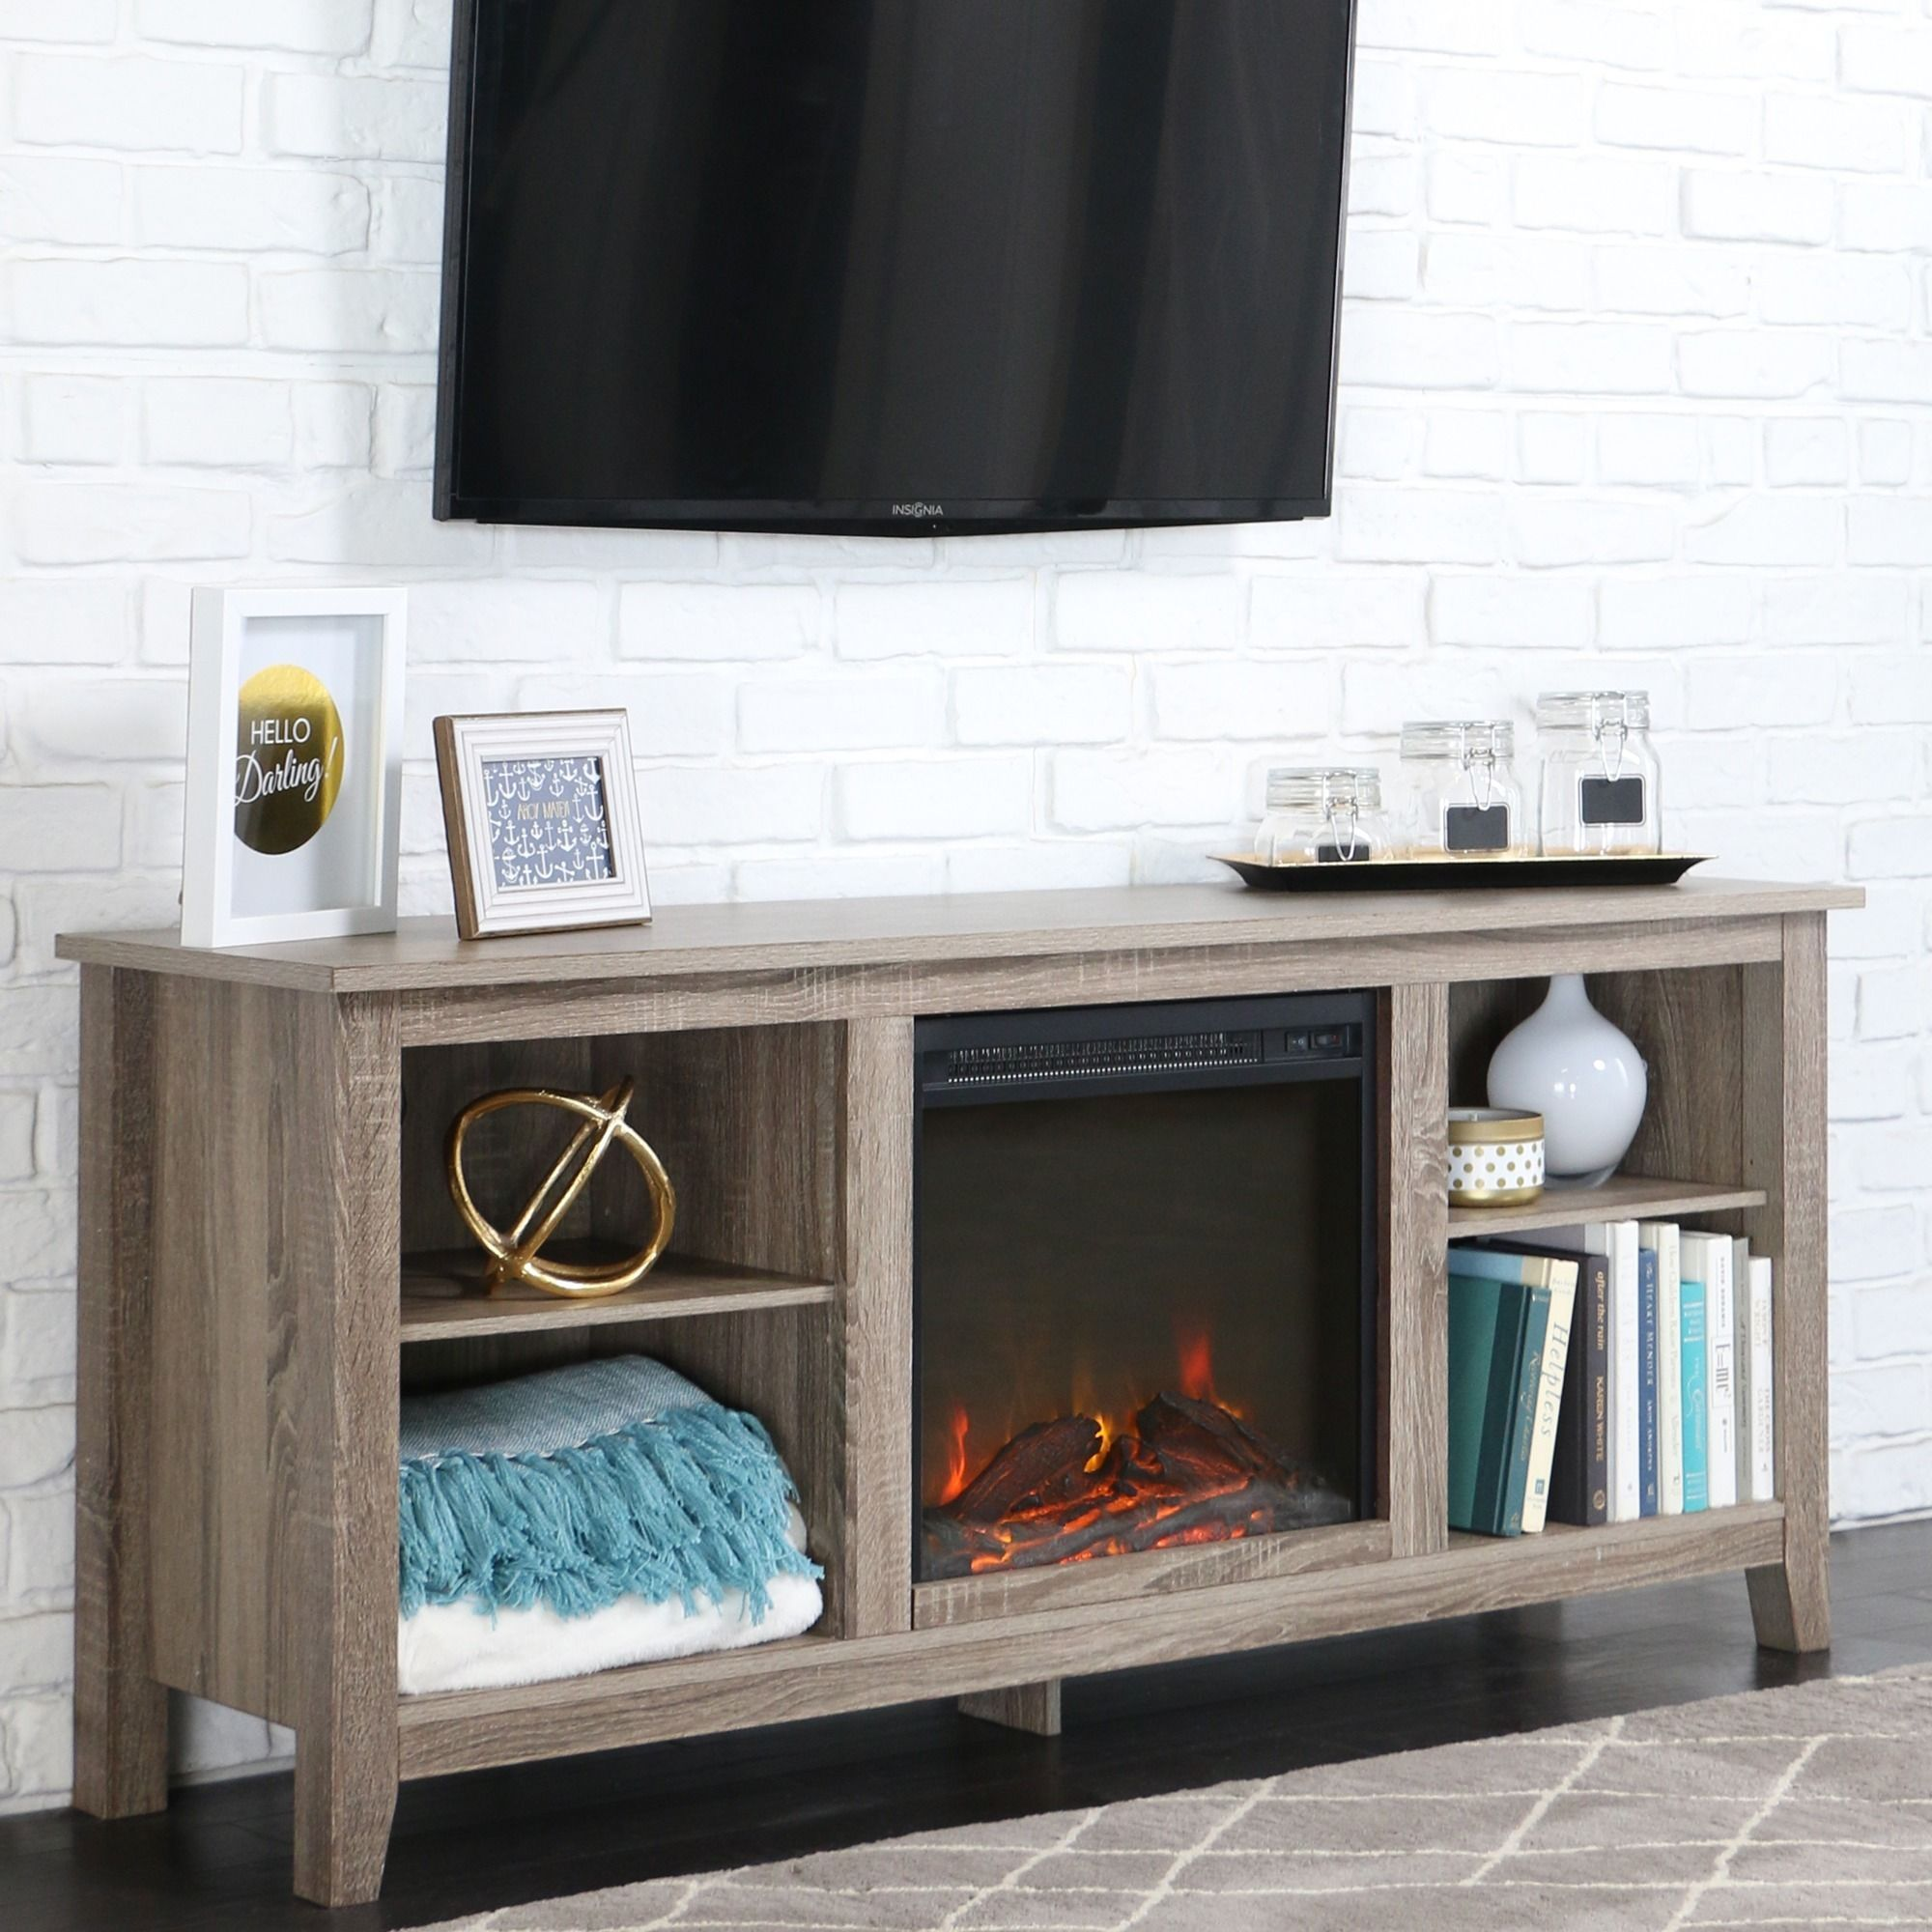 58 inch Driftwood Wood TV Stand with Fireplace